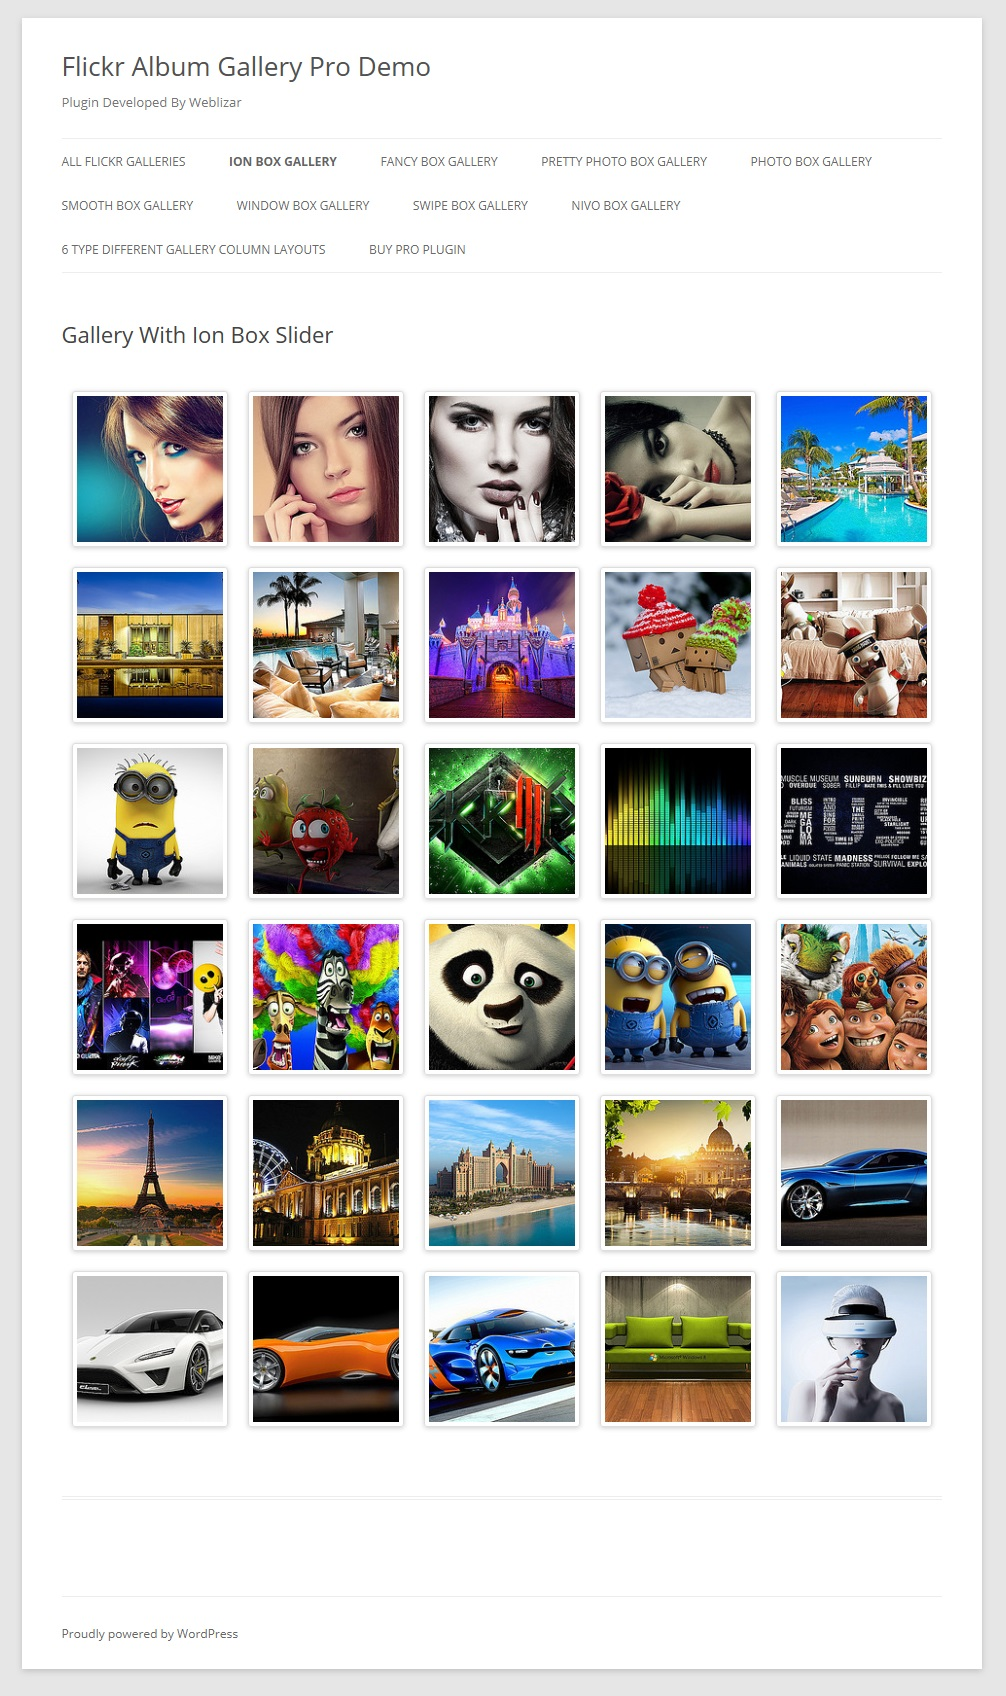 Flickr Album Gallery Preview On Page